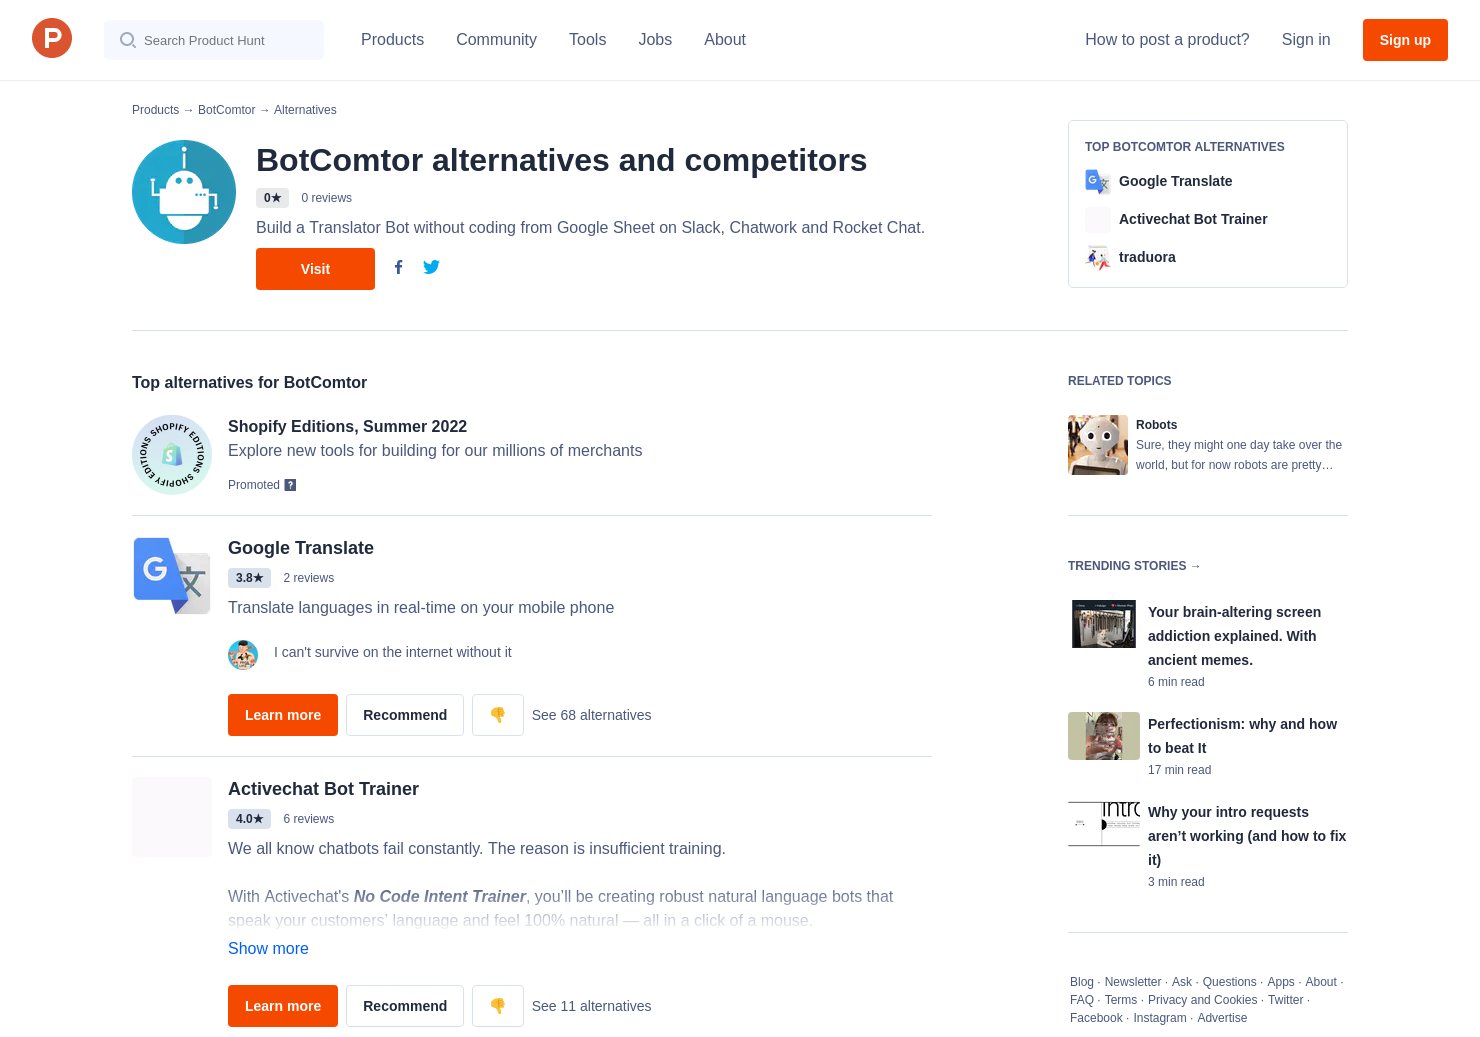 9 Alternatives to BotComtor | Product Hunt